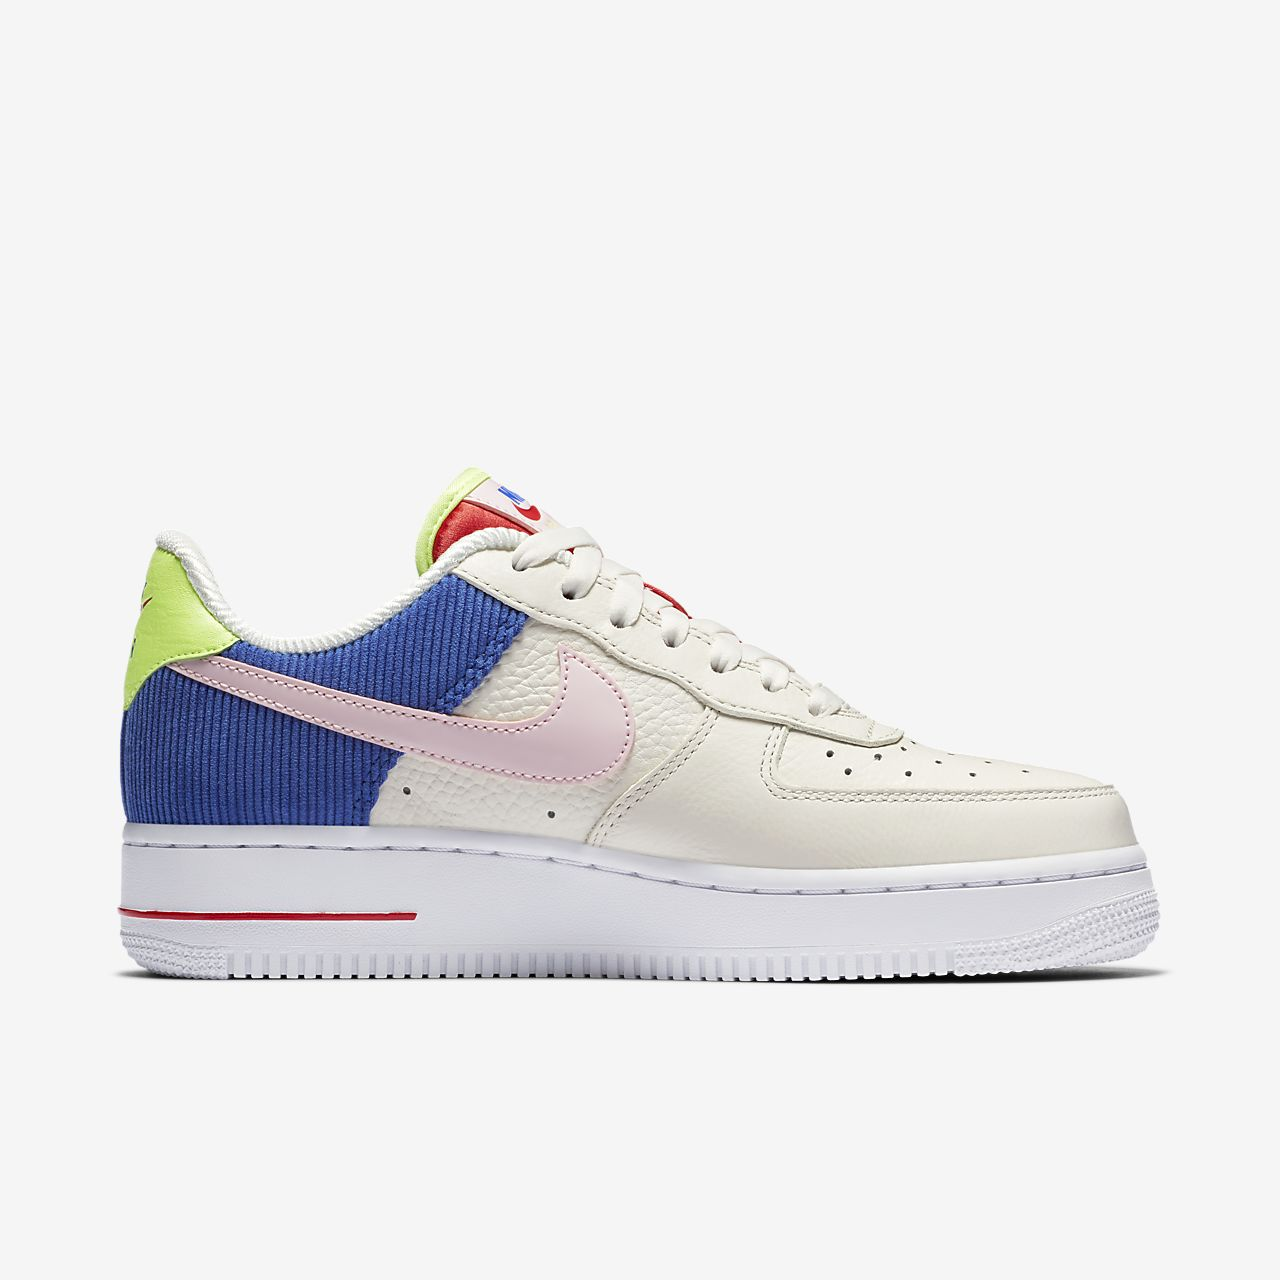 WMNS NIKE AIR FORCE 1 LOW SAIL / ARCTIC PINK  CASUAL WOMEN'S SELECT YOUR SIZE